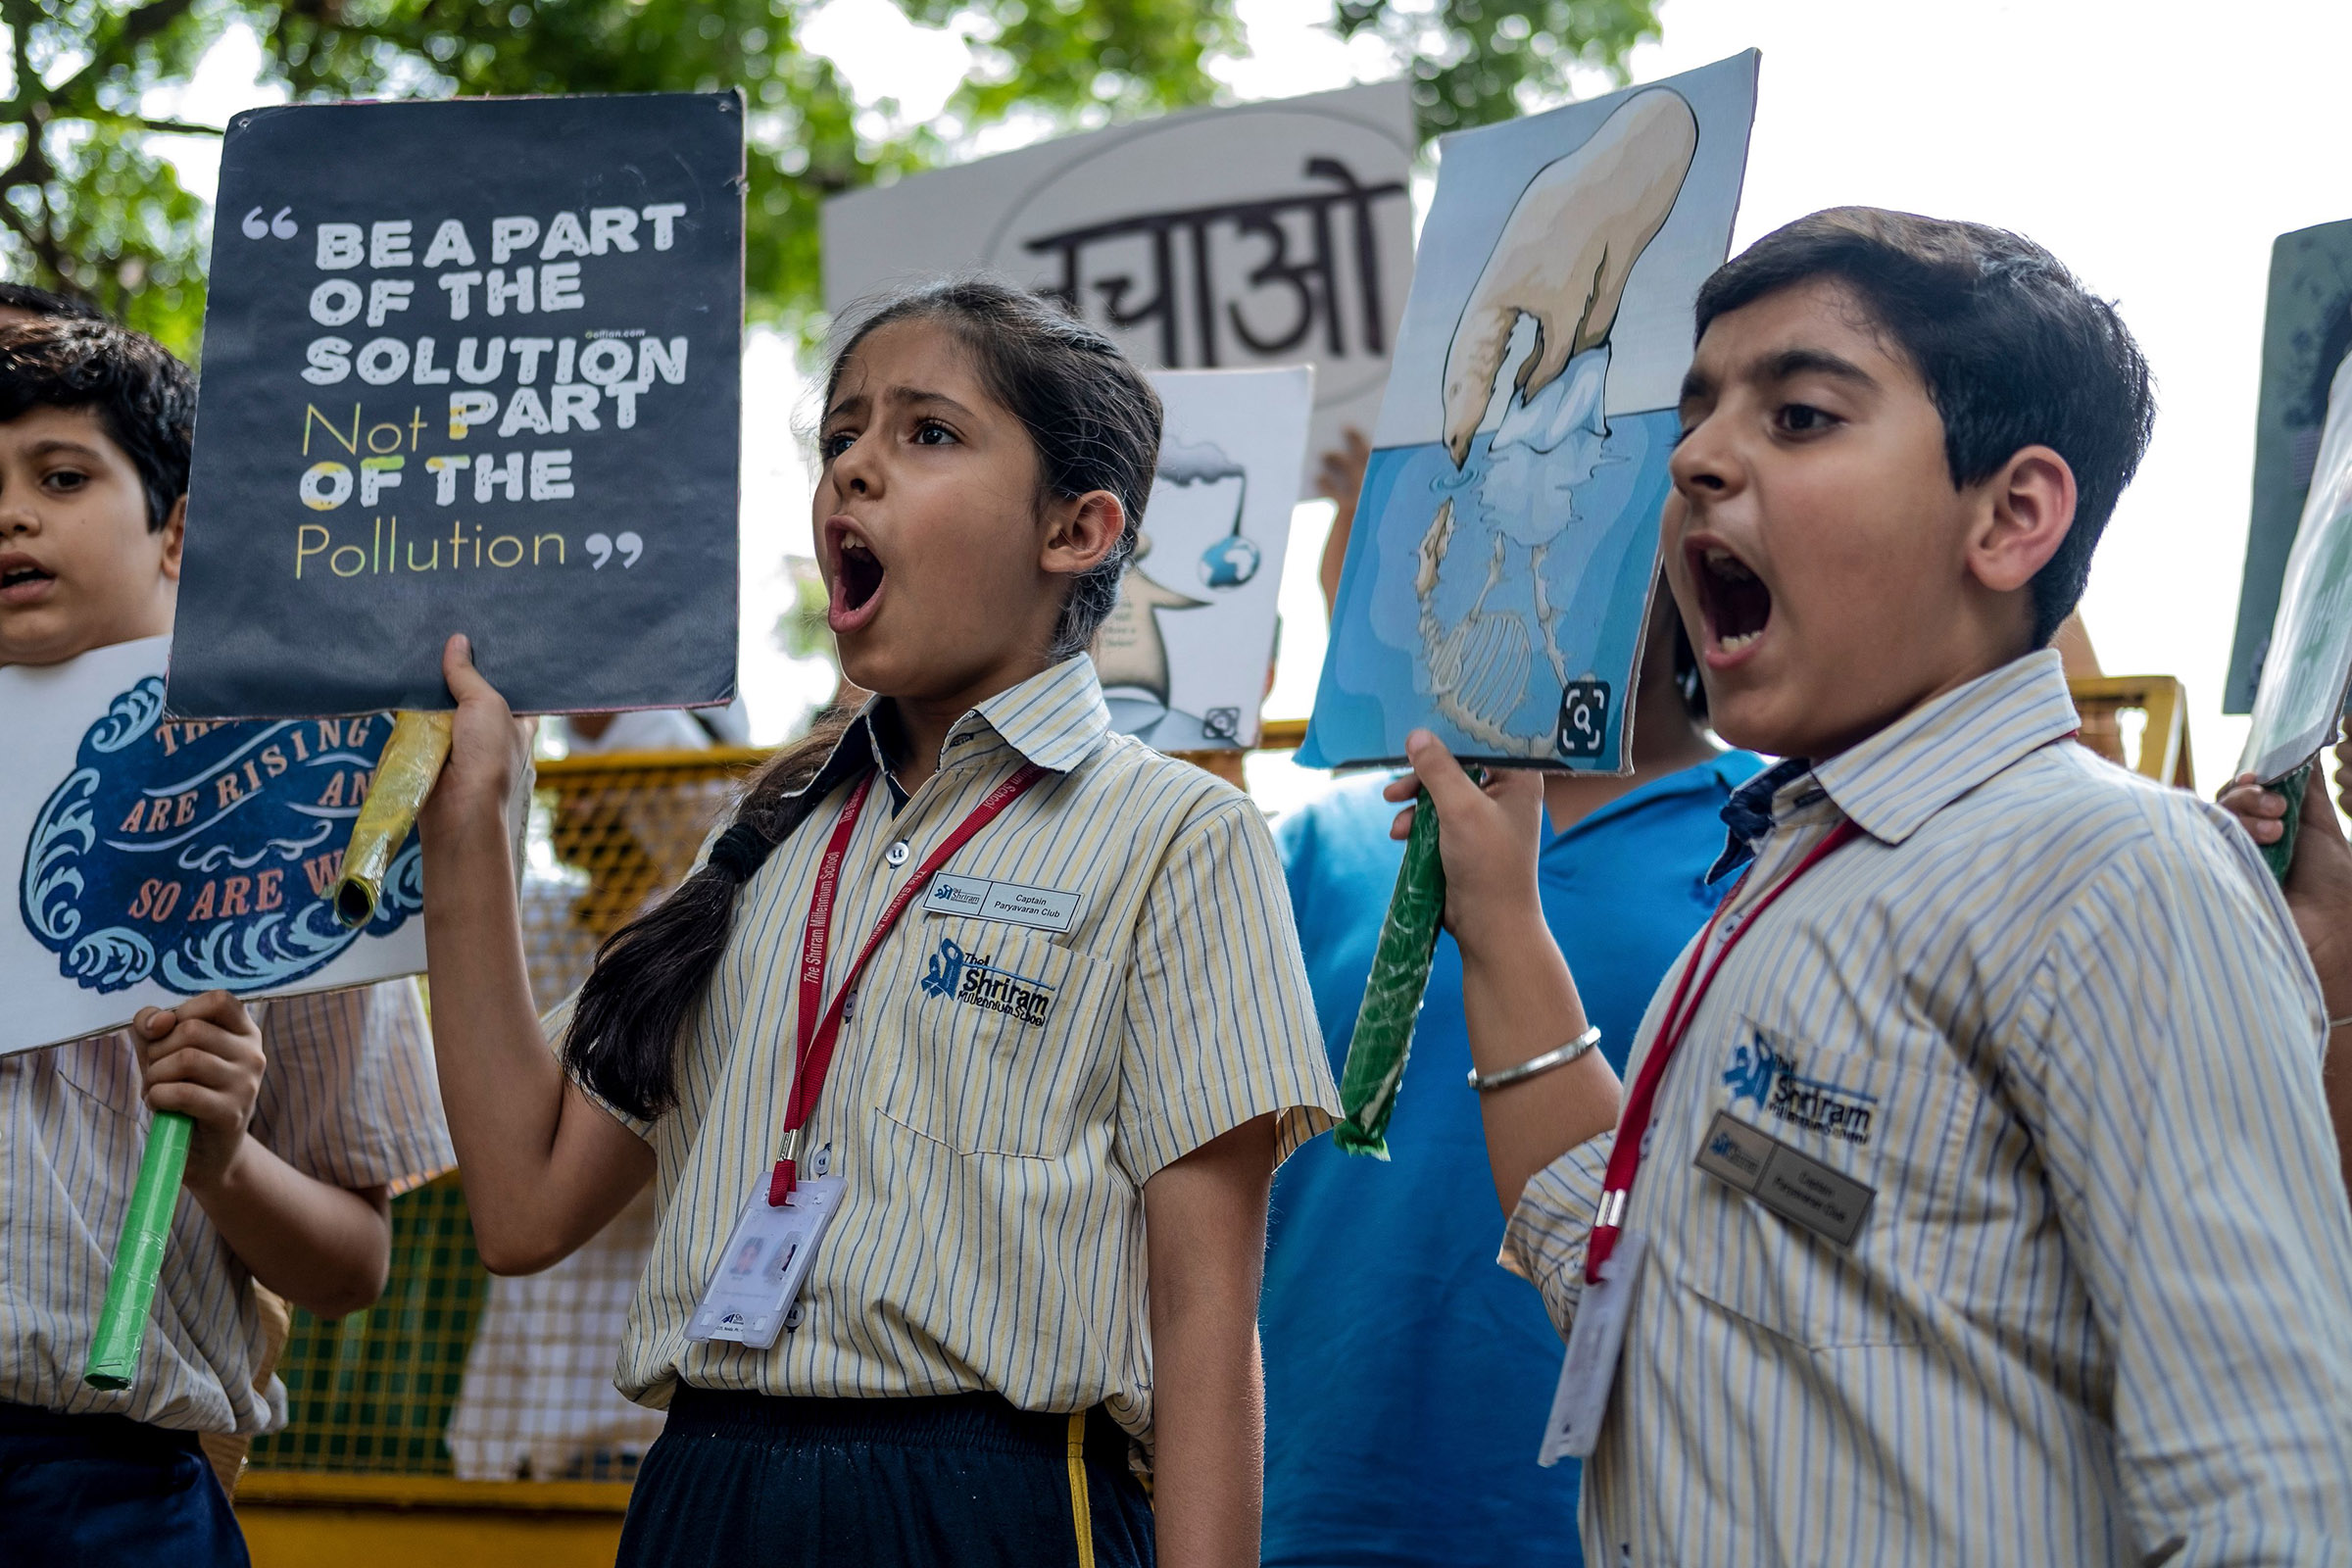 School children shout slogans as they participate in a climate strike to protest against governmental inaction towards climate breakdown and environmental pollution, part of demonstrations being held worldwide in a movement dubbed  Fridays for Future , in New Delhi on September 20, 2019.